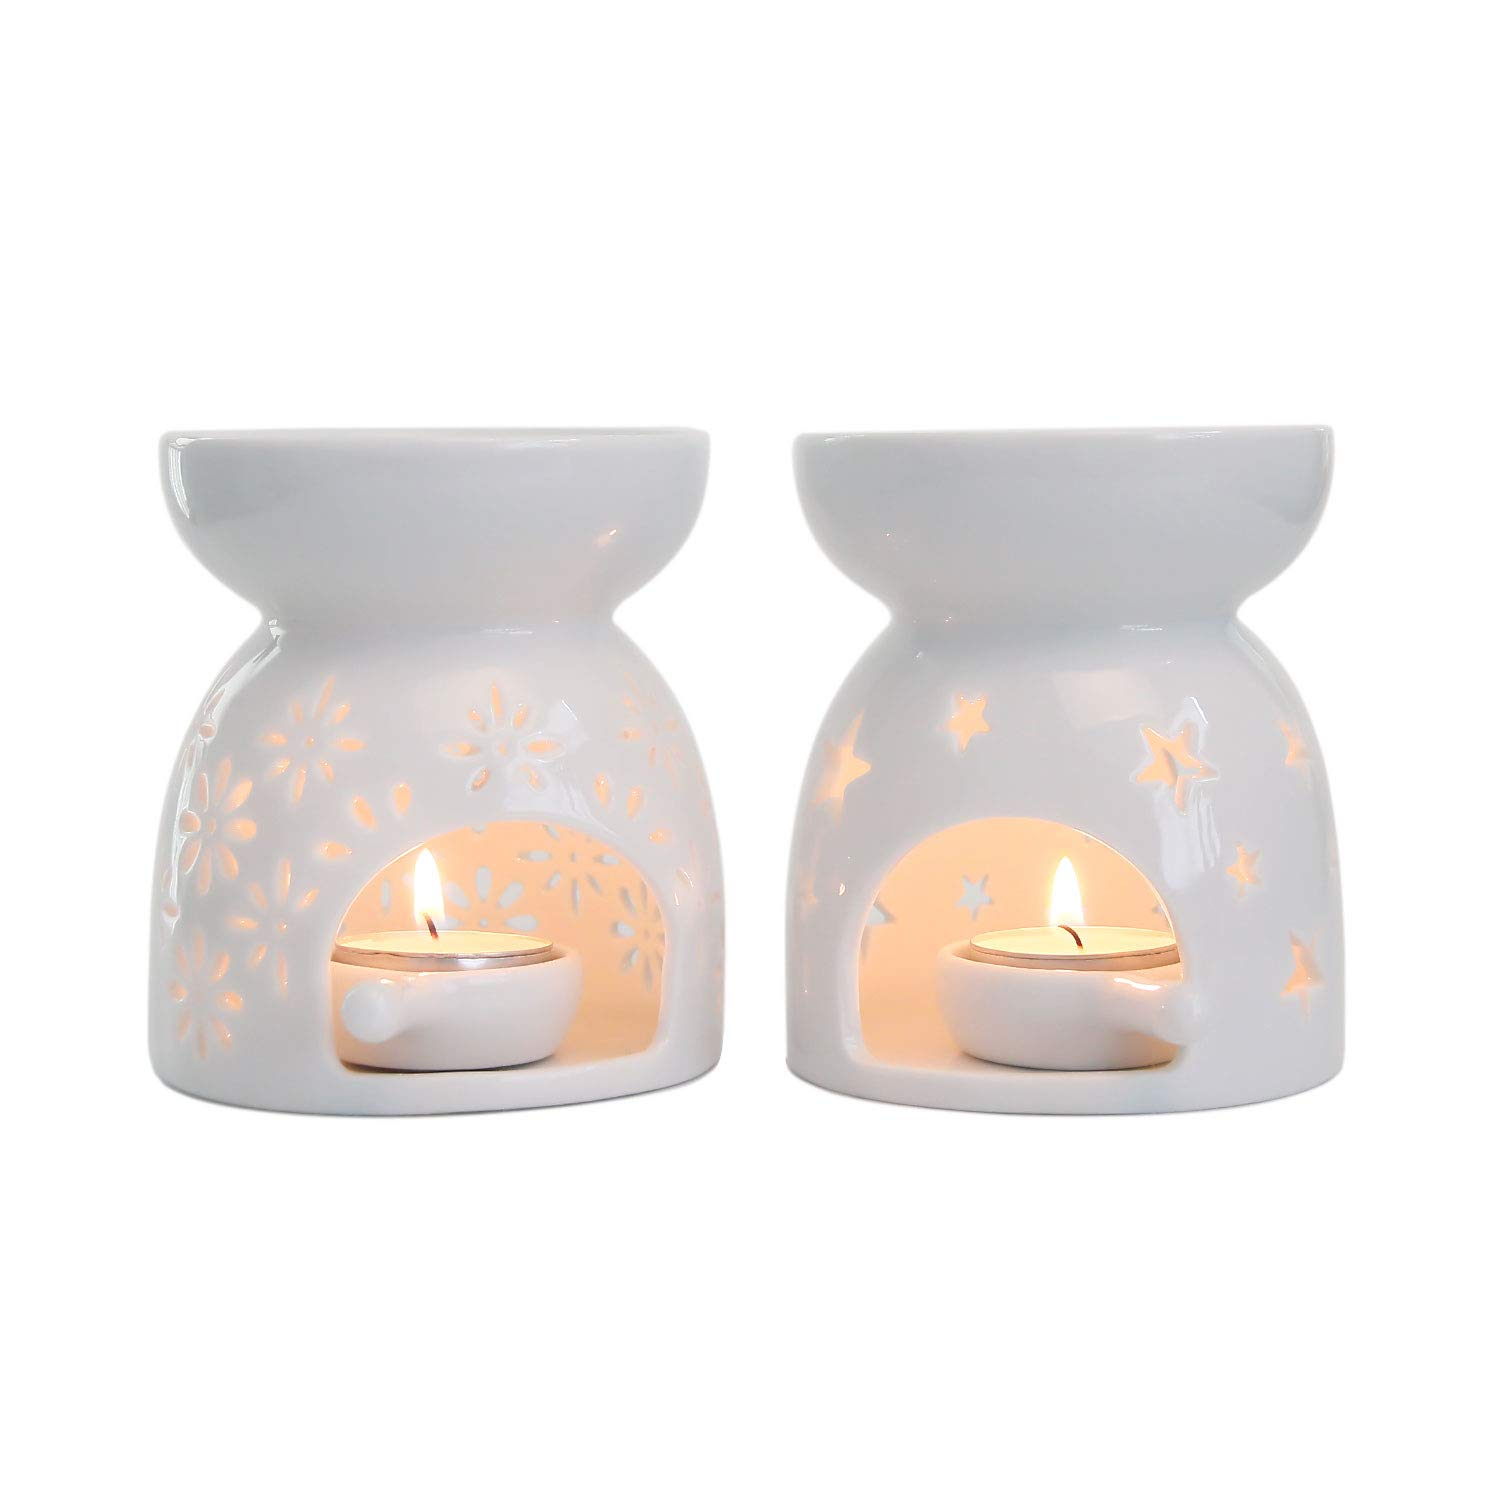 Rachel's Choice Ceramic Essential Oil Incense Aroma Lamp Diffuser Candle Furnace Tea Light Holder White Pack of 2 Mucihom